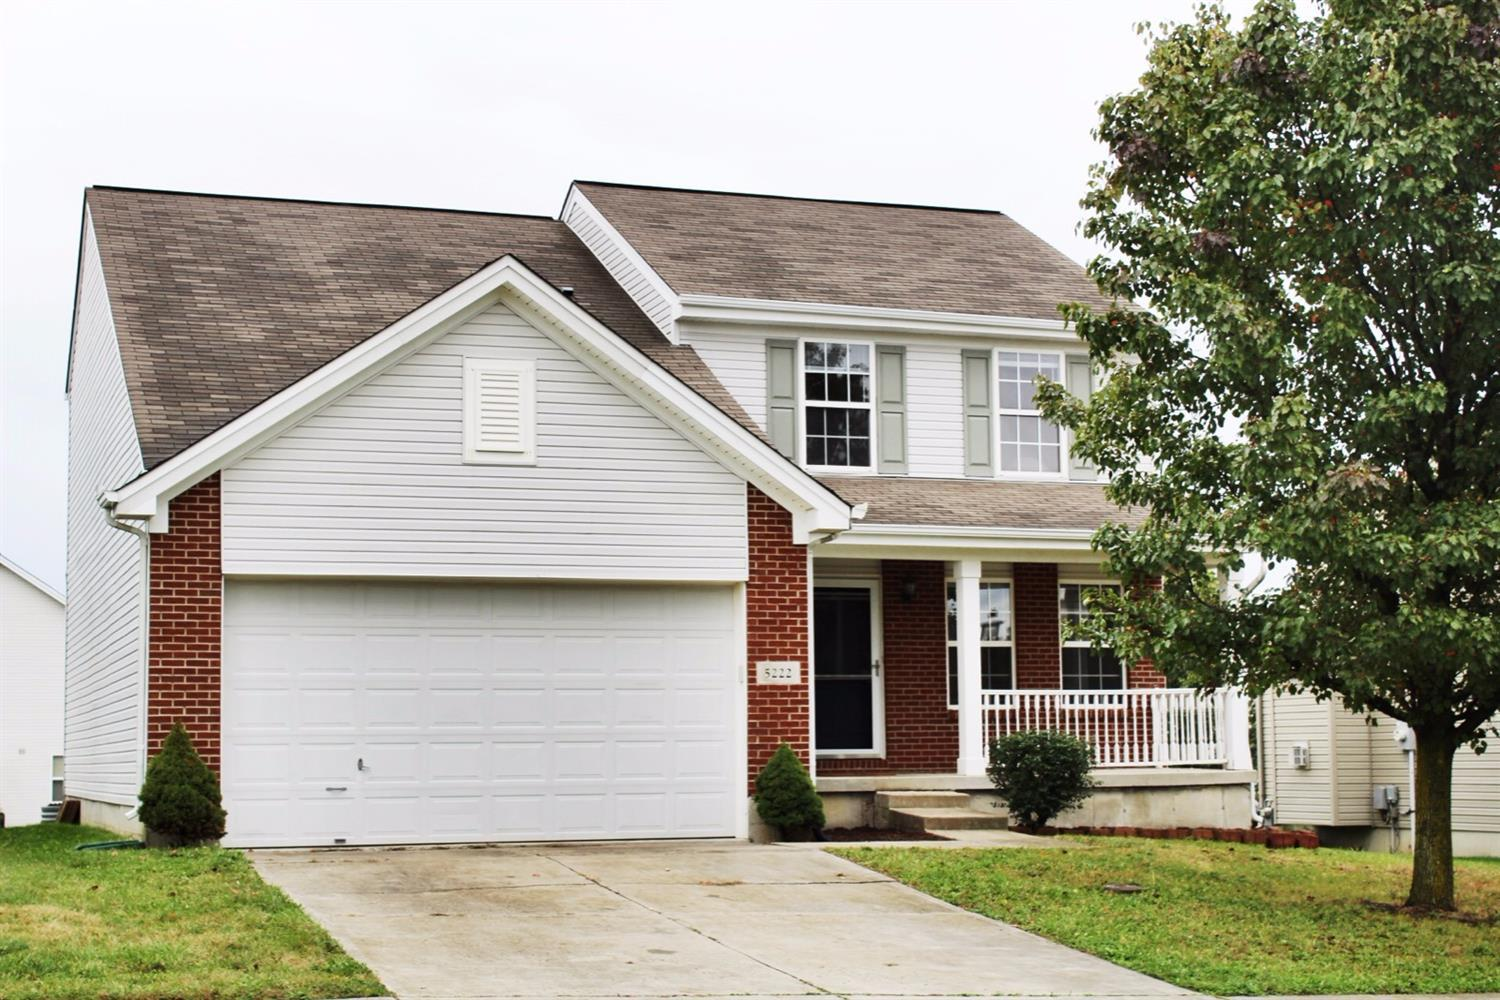 5222 Sunrise View Cir For Rent - Liberty Township, OH   Trulia